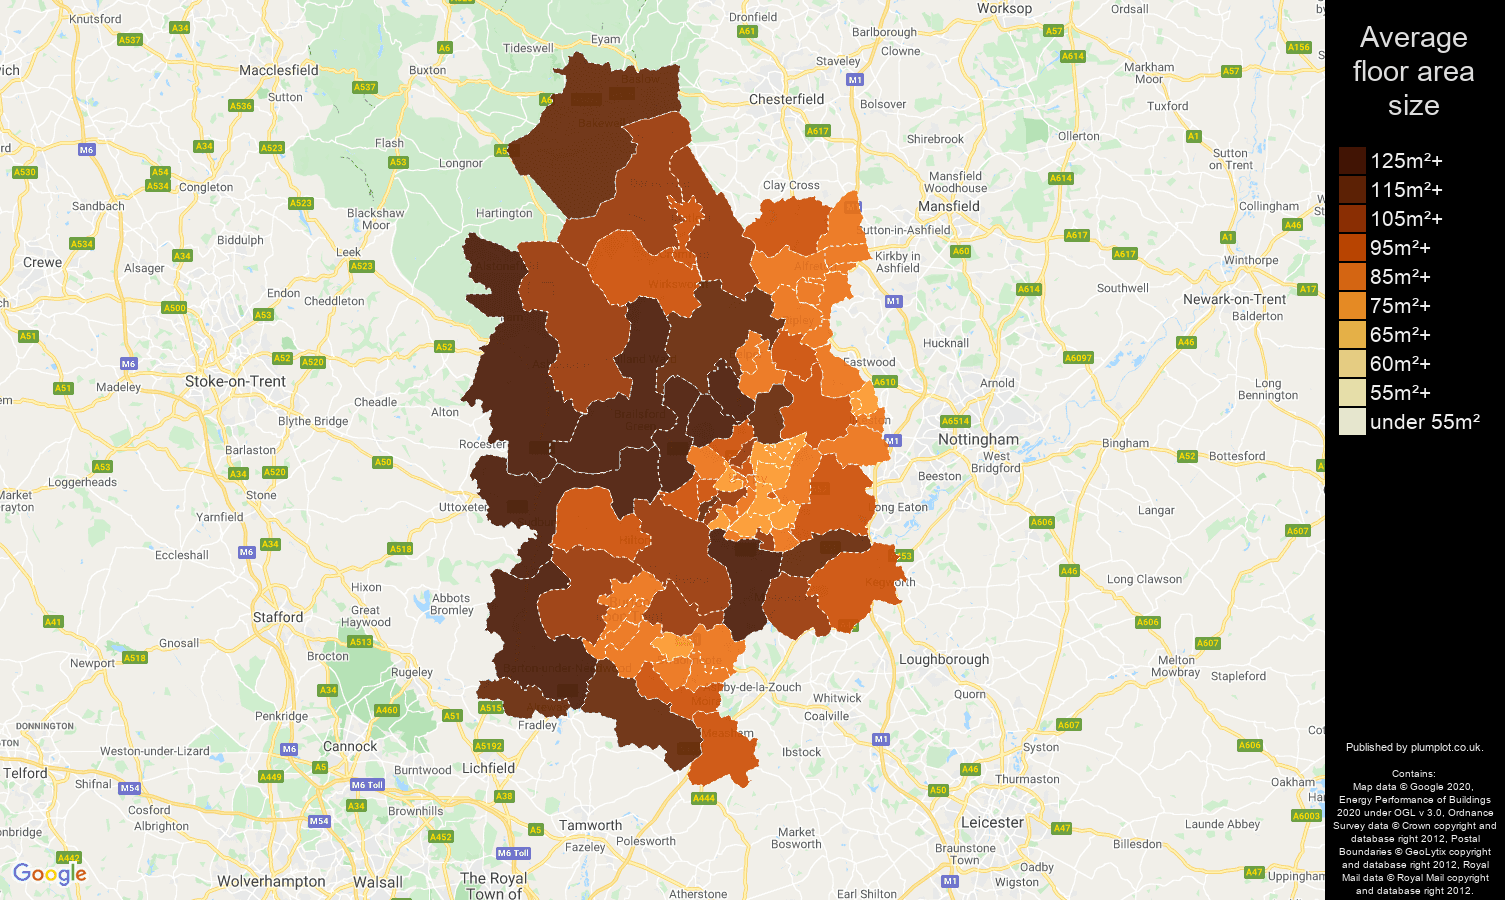 Derby map of average floor area size of houses